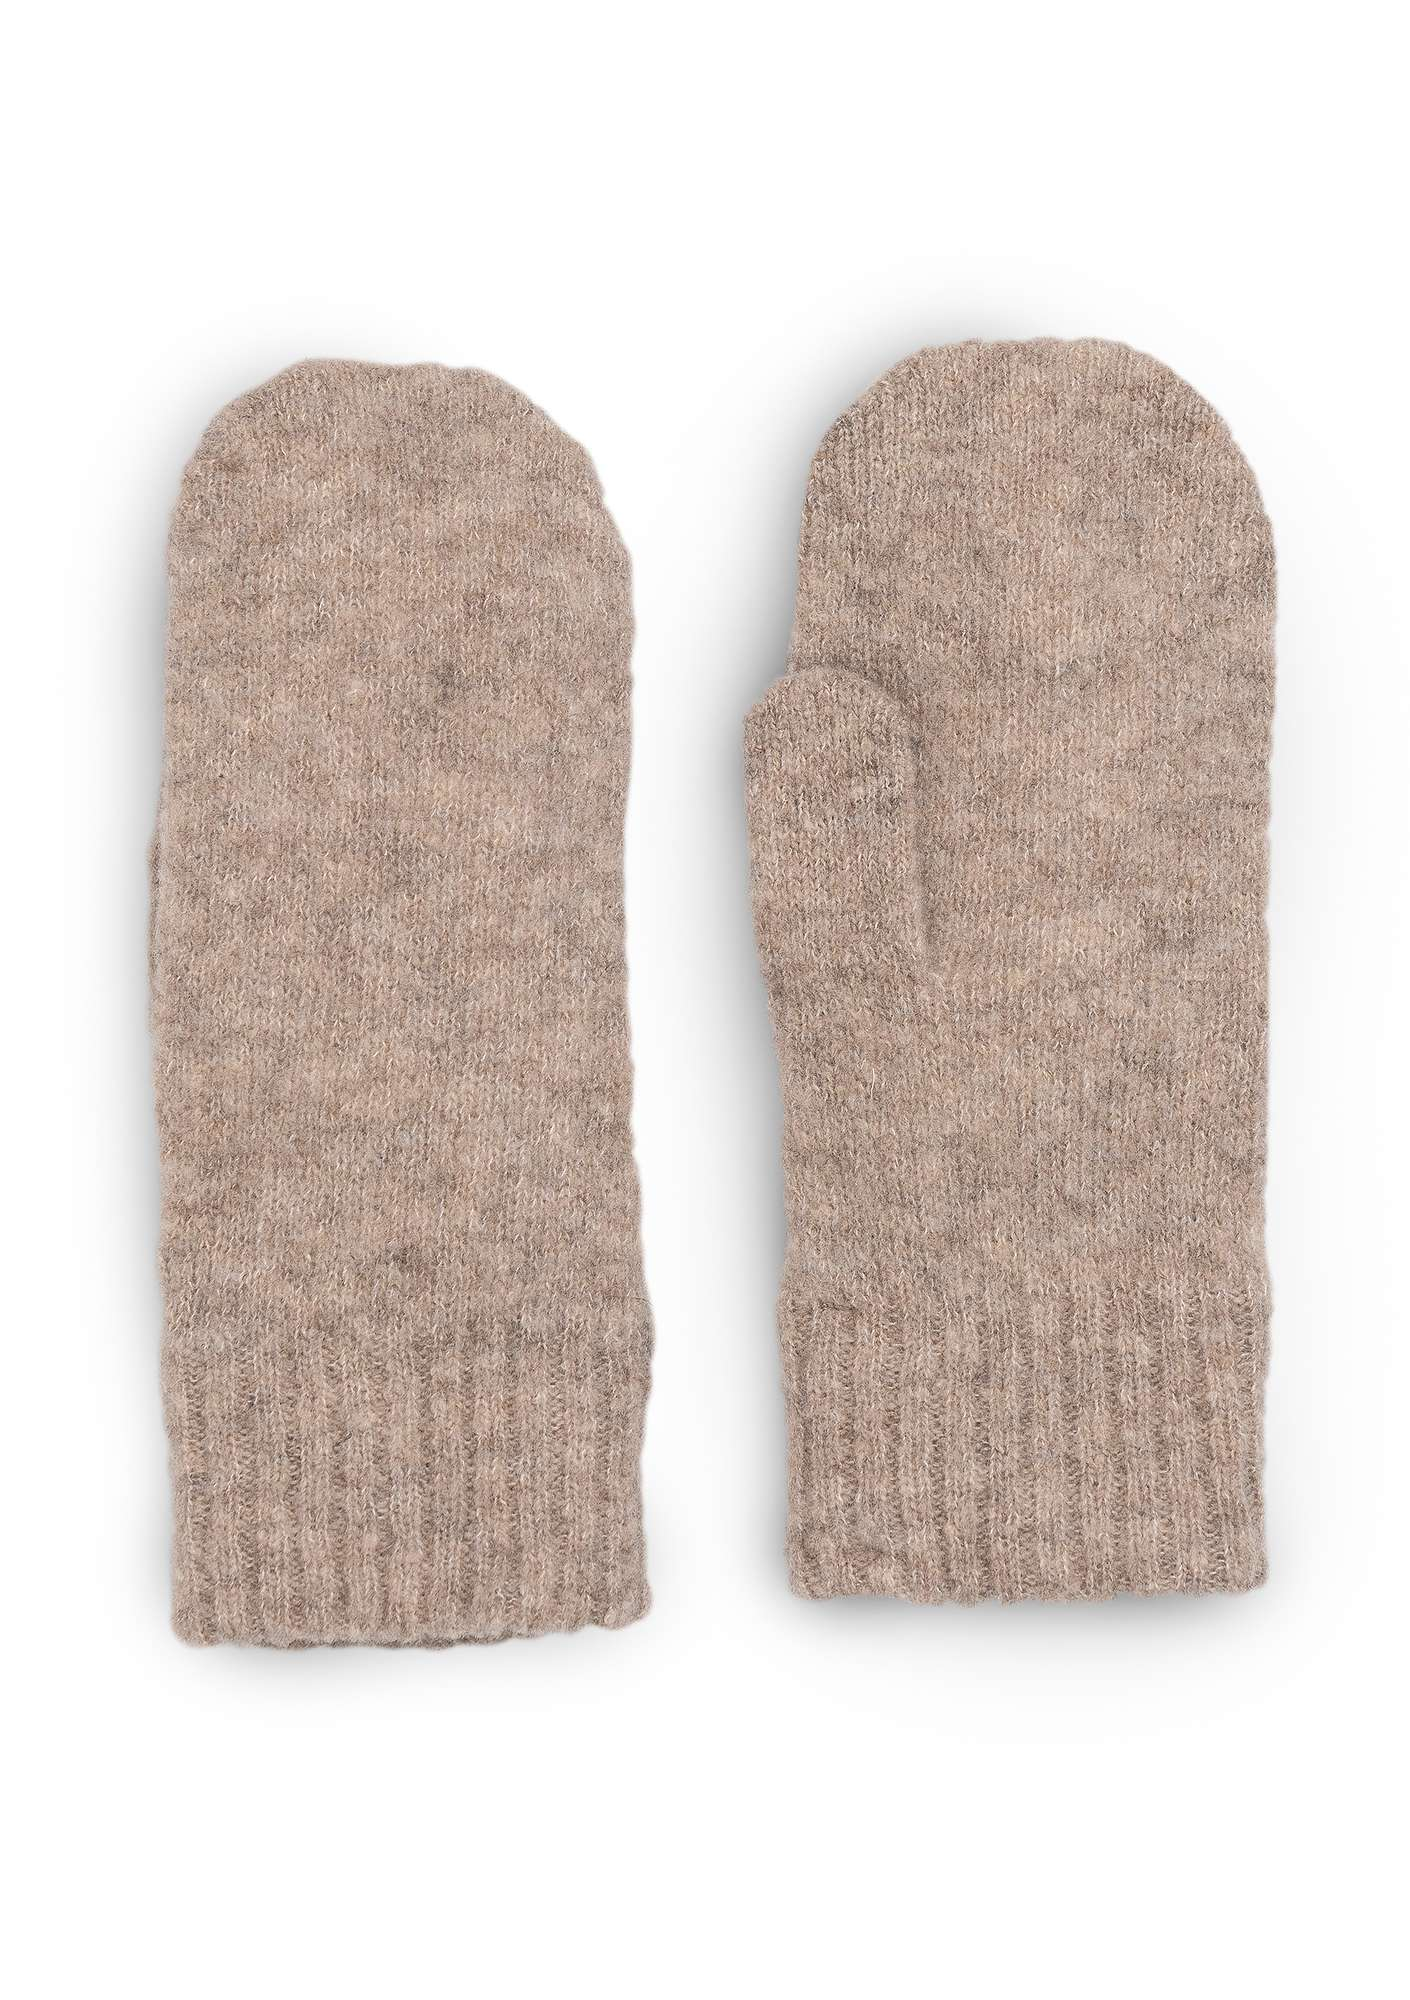 Knitted mittens in a recycled cashmere blend putty